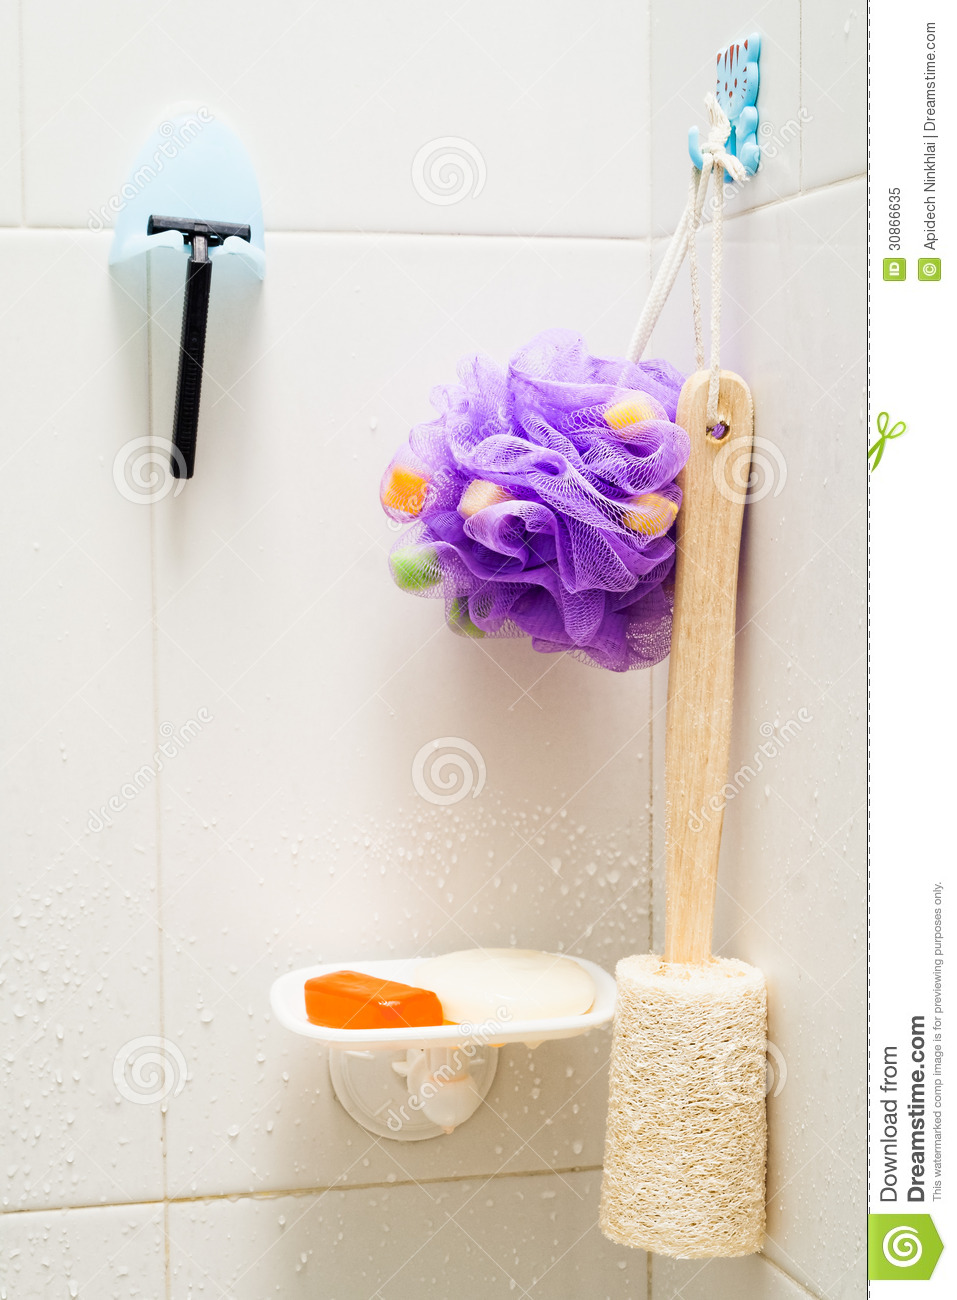 In the bathroom royalty free stock photo image 30866635 for Bathroom utensils